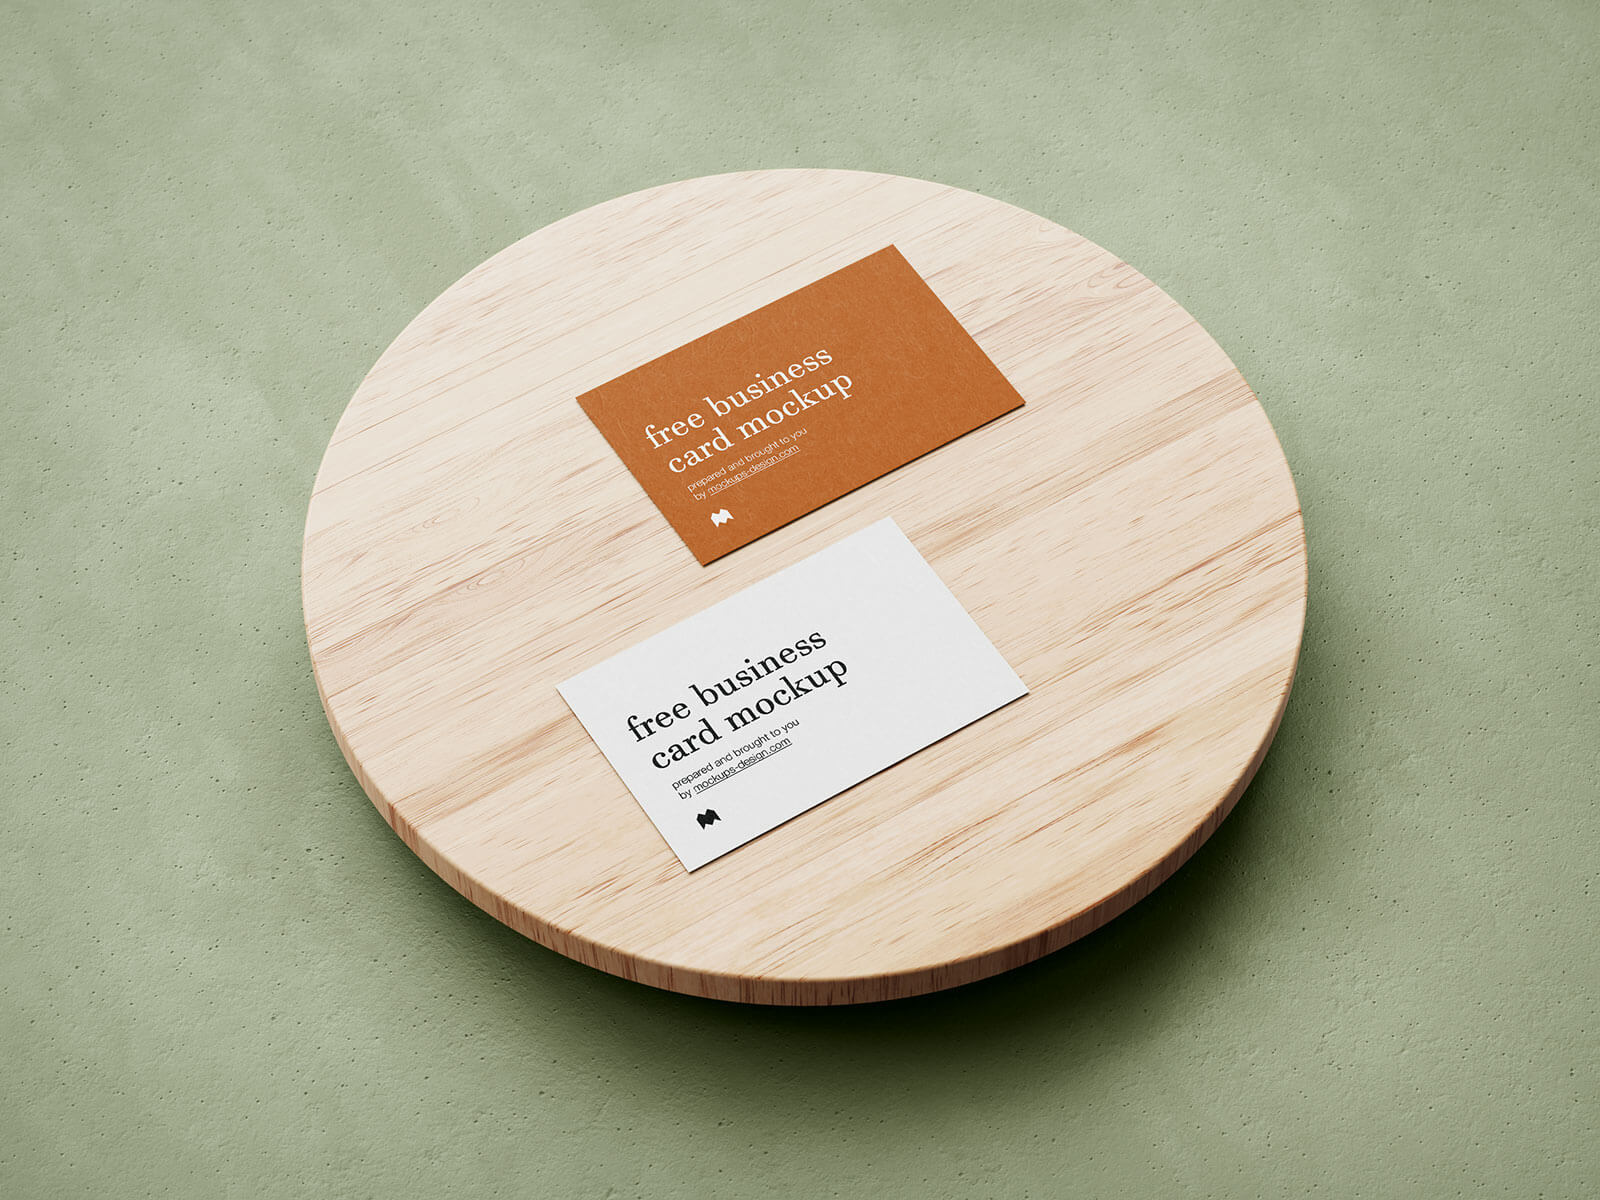 Free Business Card On Wooden Tray Mockup PSD